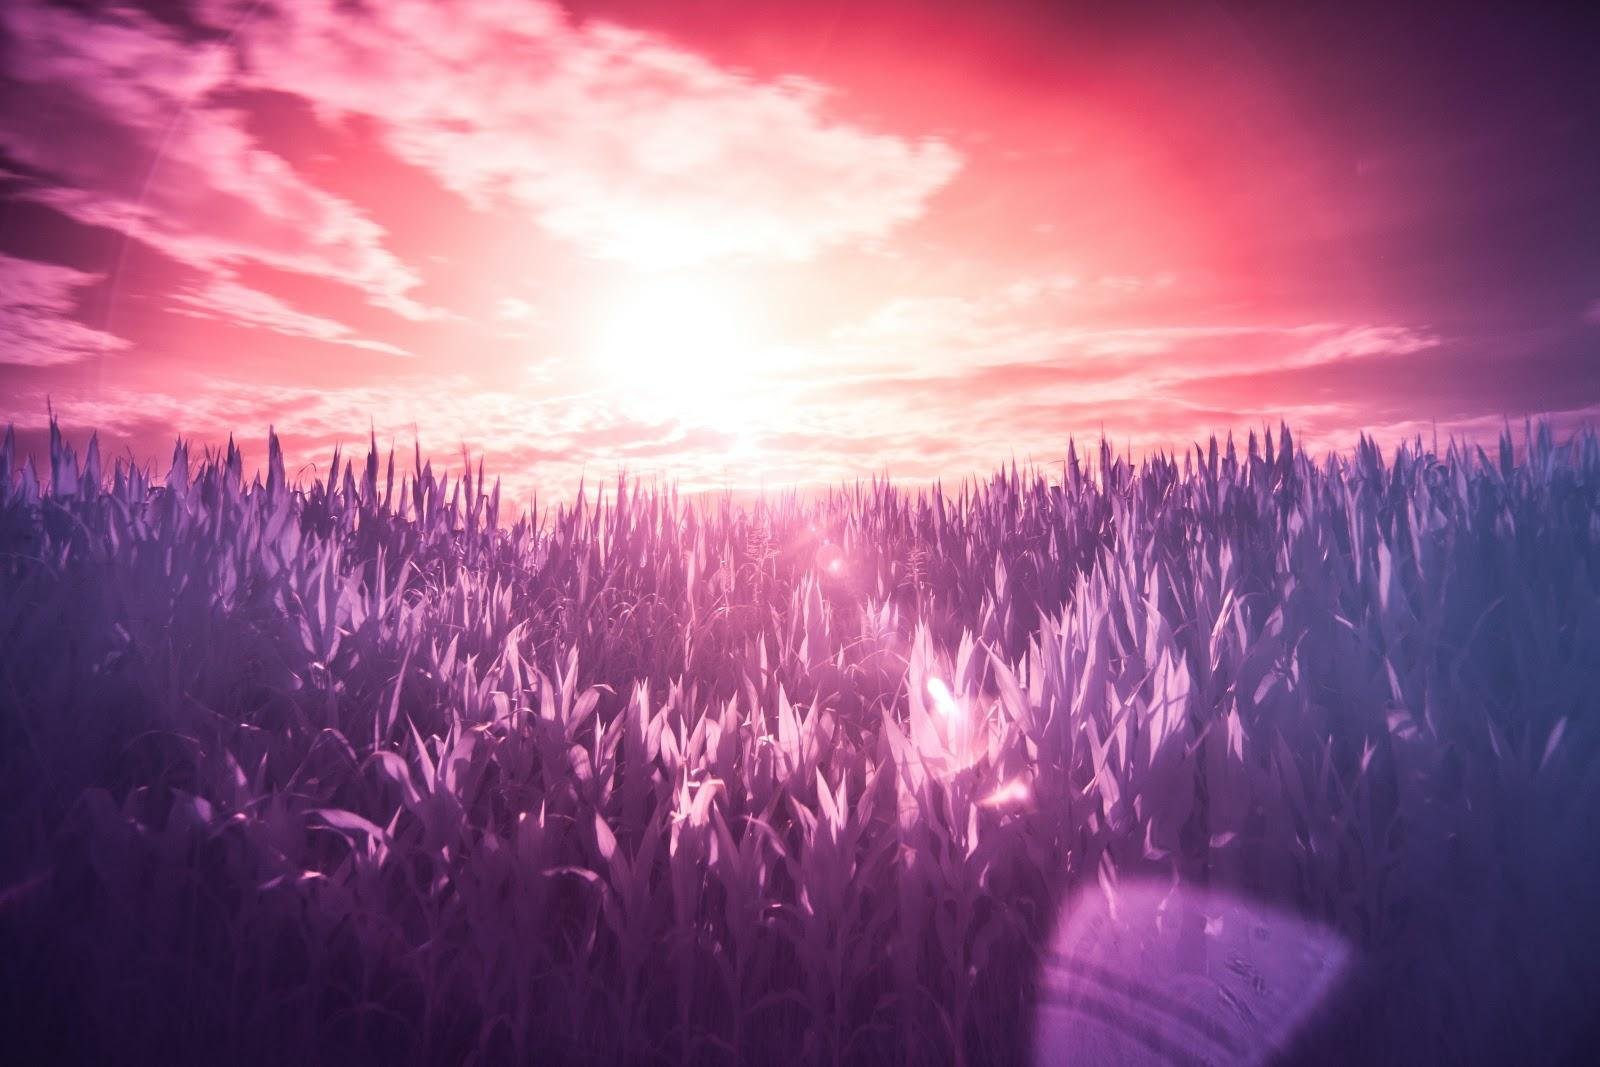 infrared photography of a farm